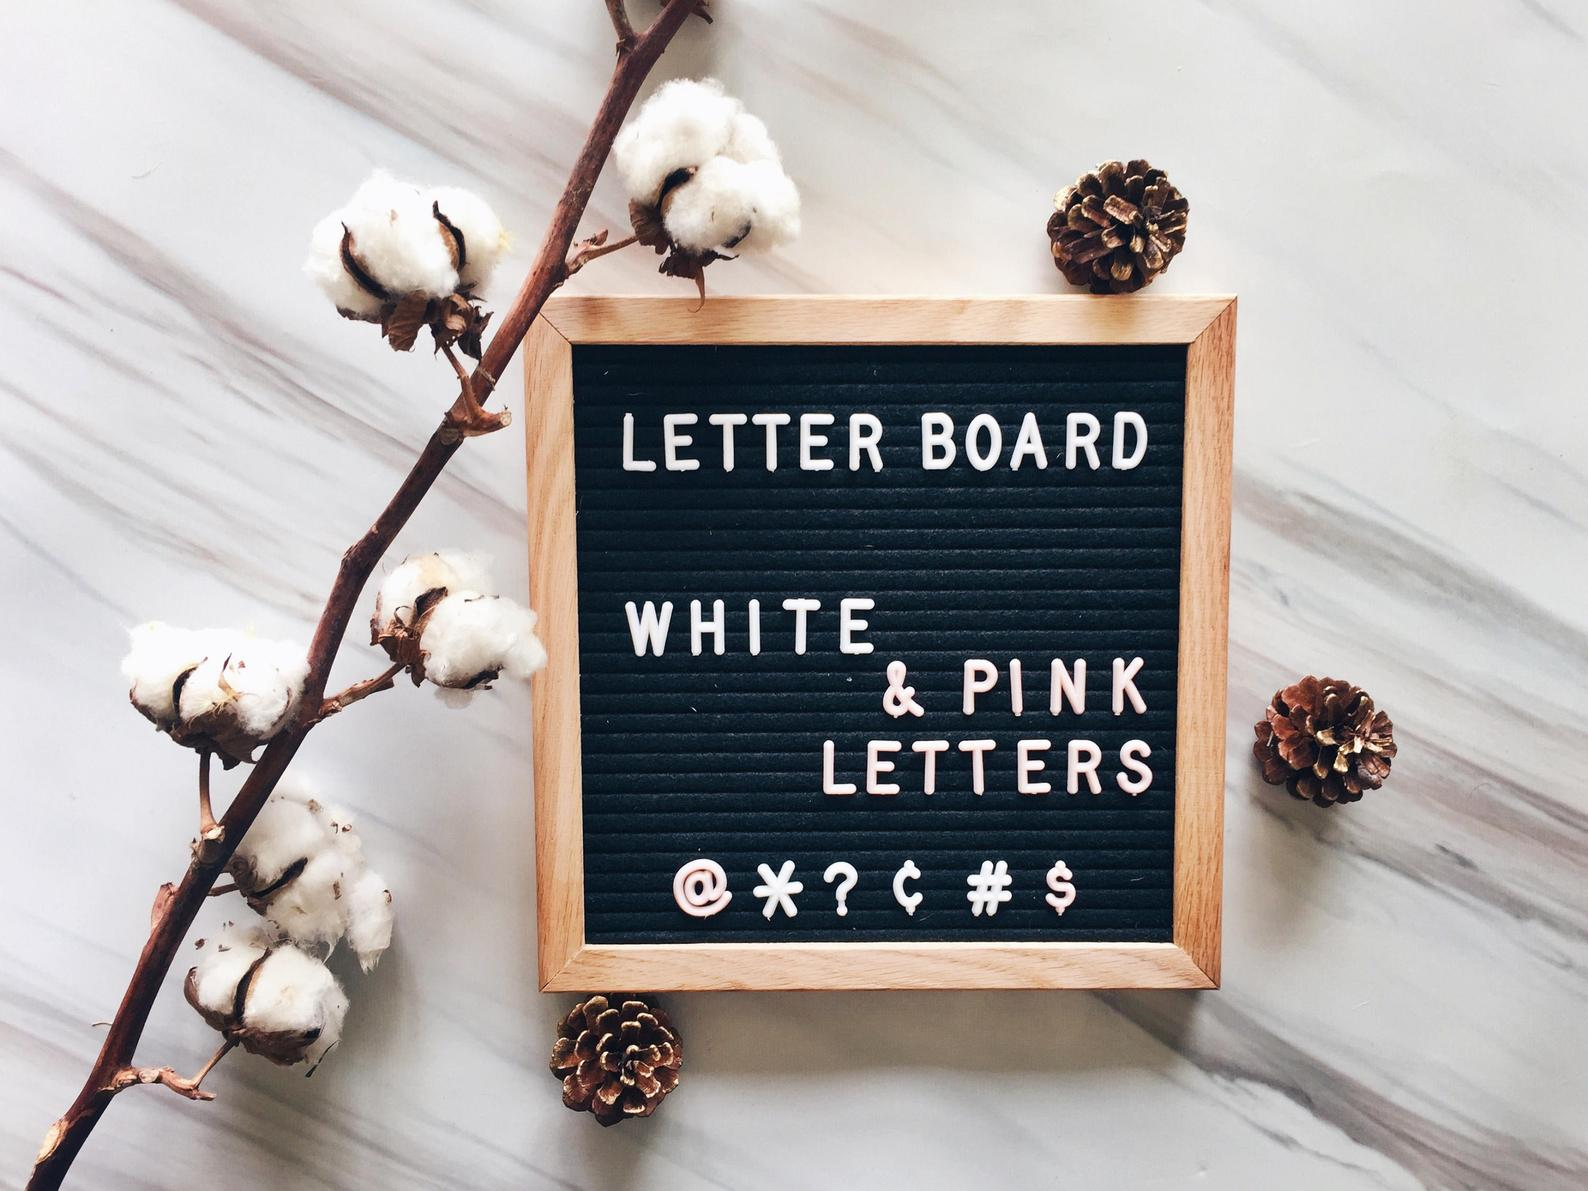 Letter Board with White & Pale Pink Letters By Danae Supply Co